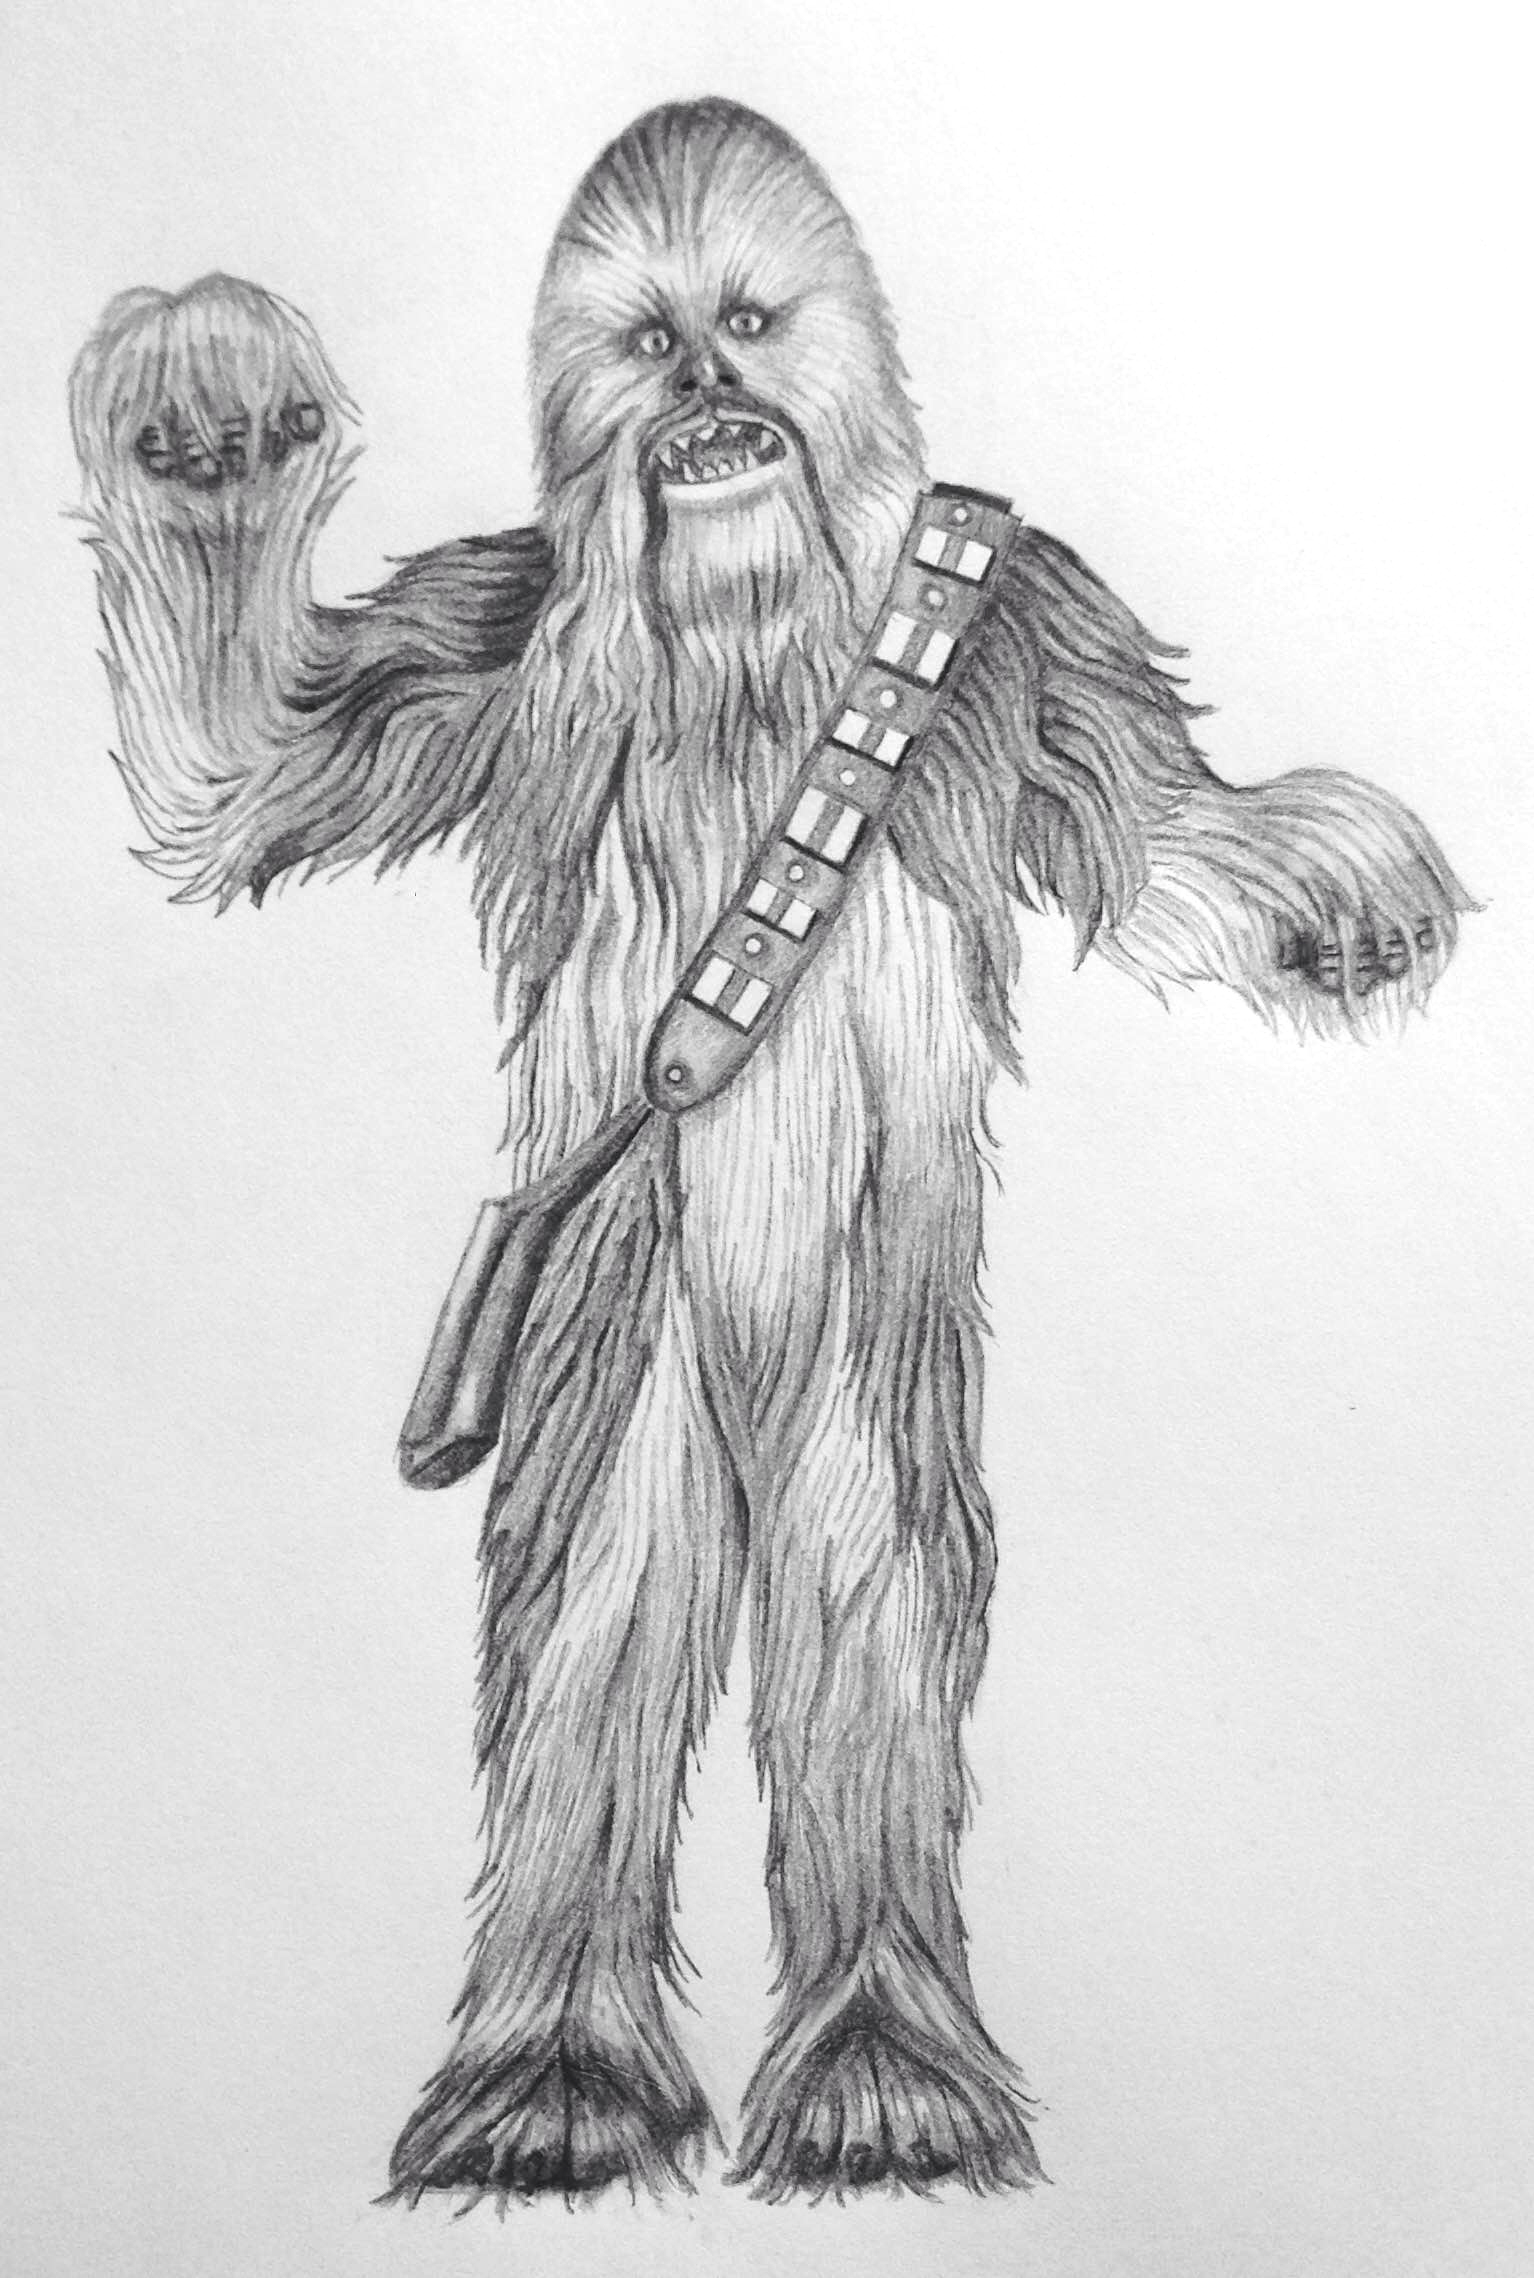 CHEWBACCA WELCOMES YOU!